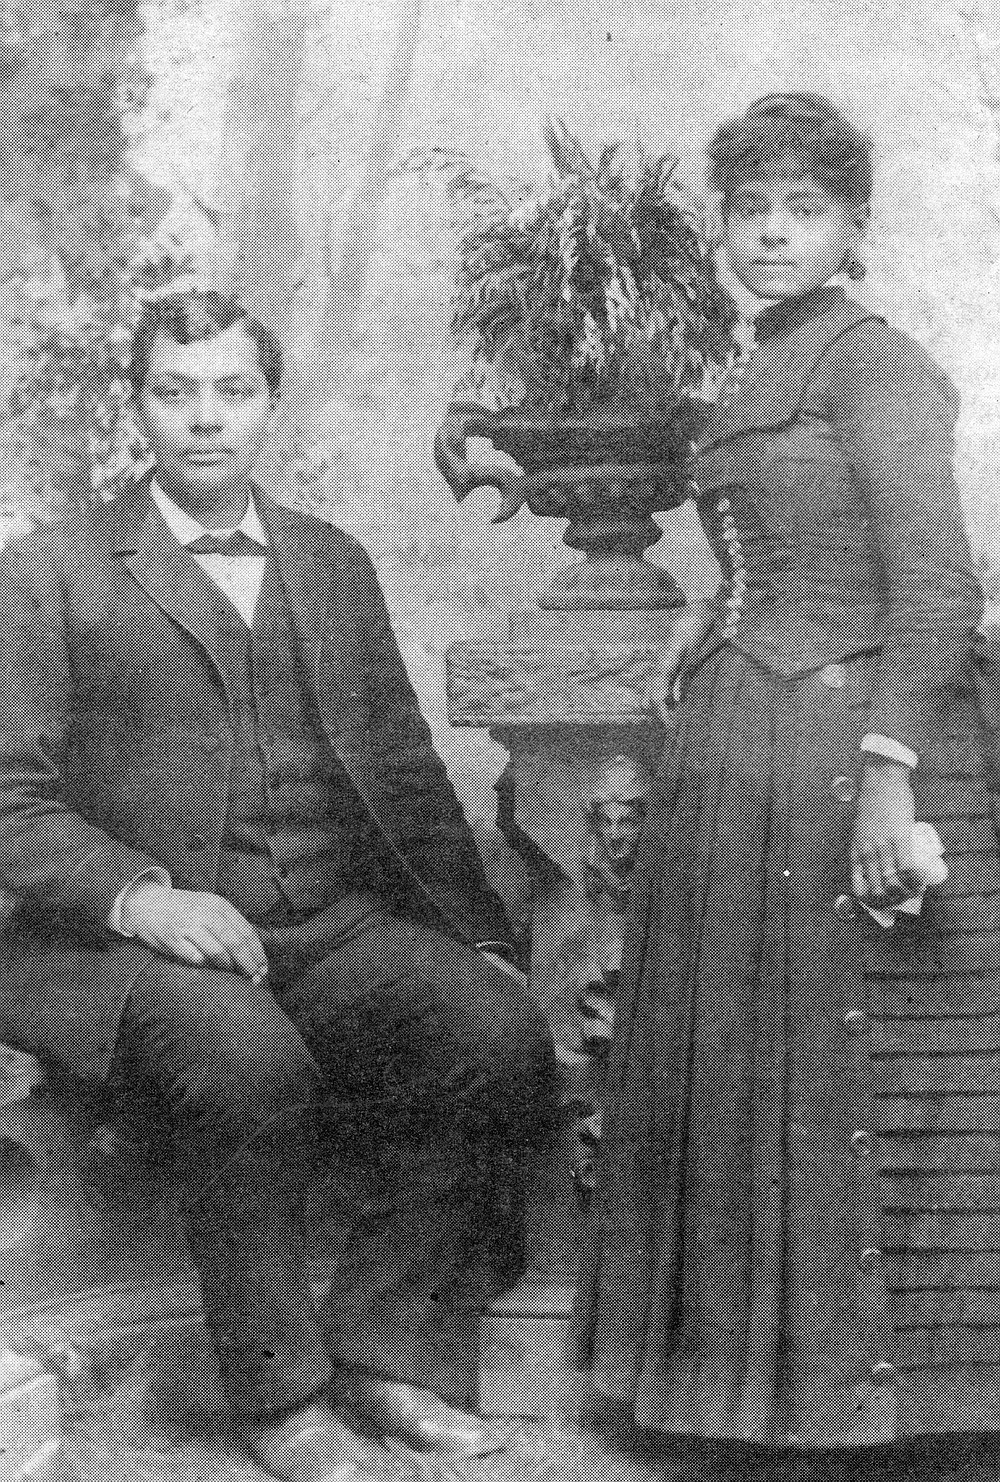 Amos and Cynthia Hudgins (grandparents of Cynthia May), 1874. Grandpa Amos was very light but had Negro features. Grandma Cynthia's father was English— her mother was perhaps mulatto as well.